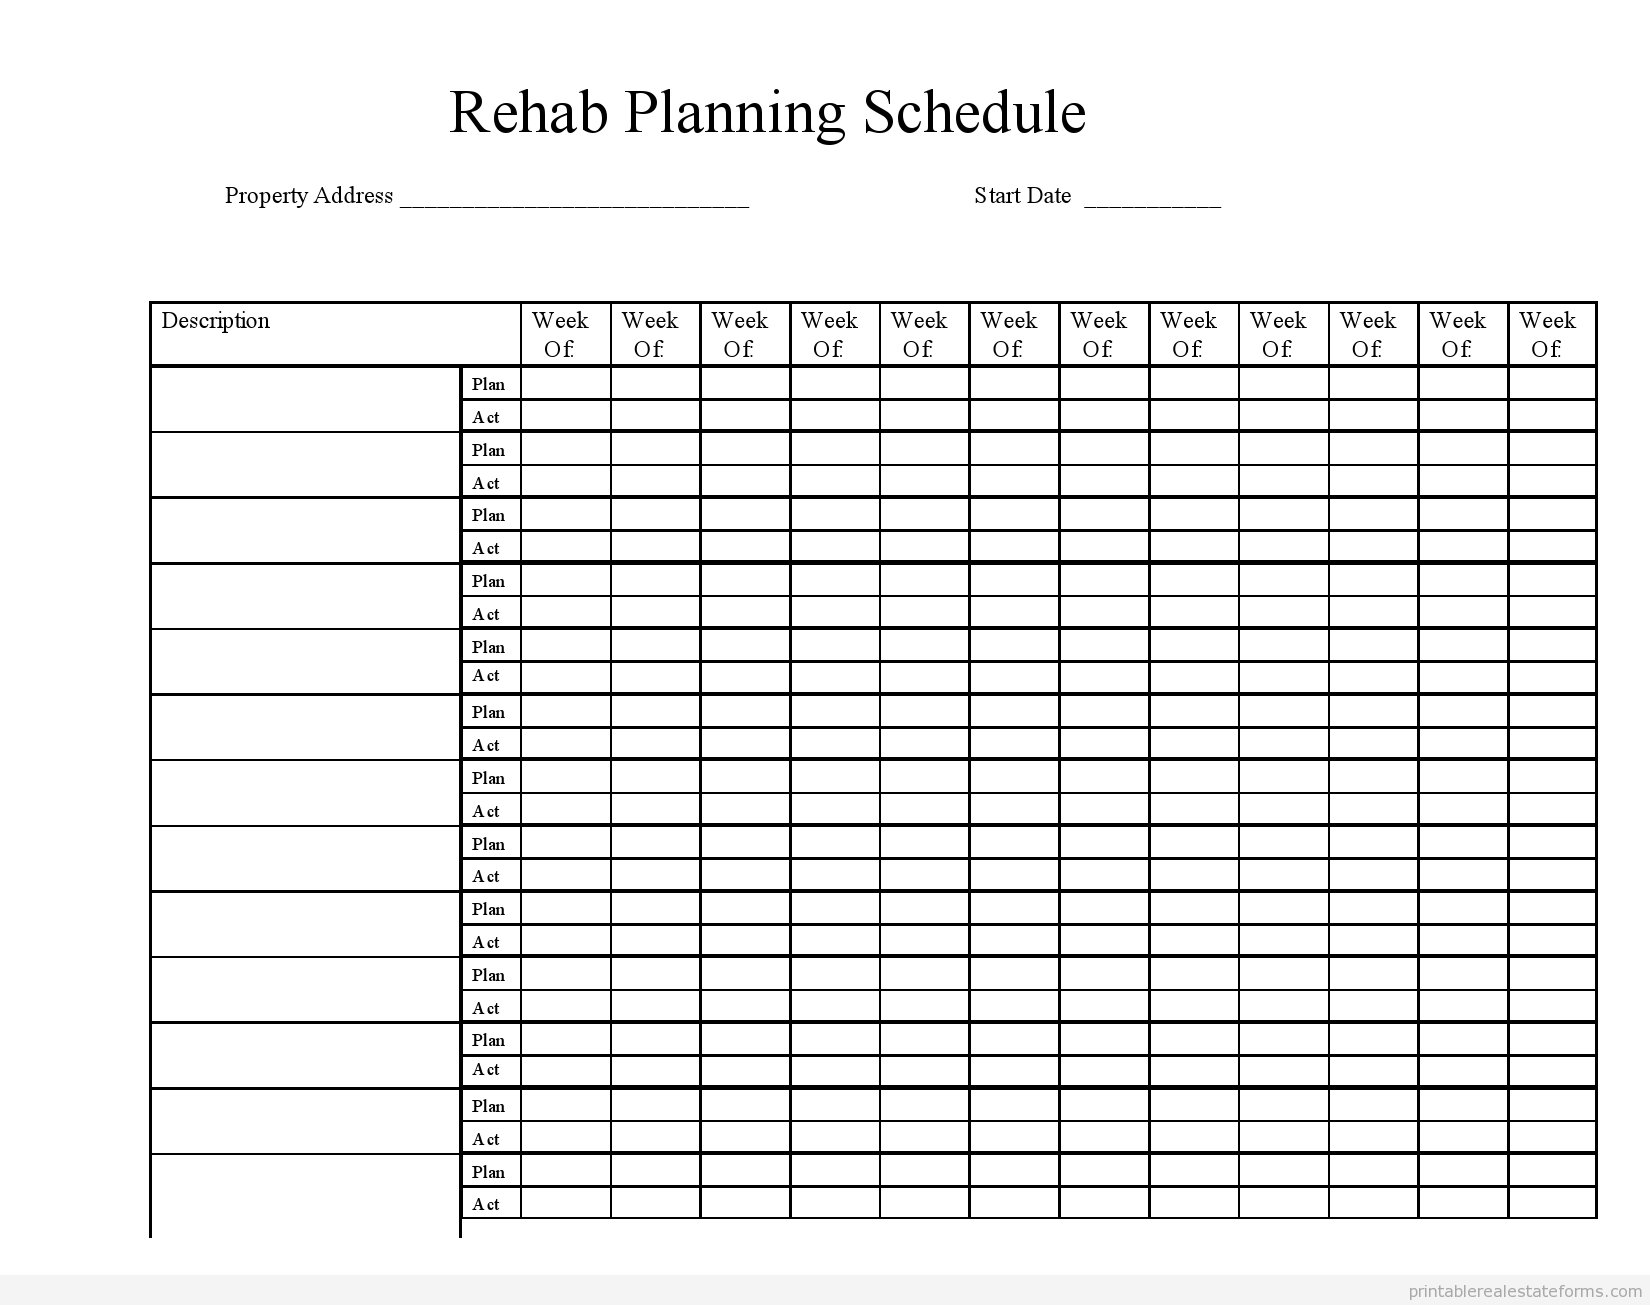 Sample Printable Rehab Planning Schedule Form  Printable Real